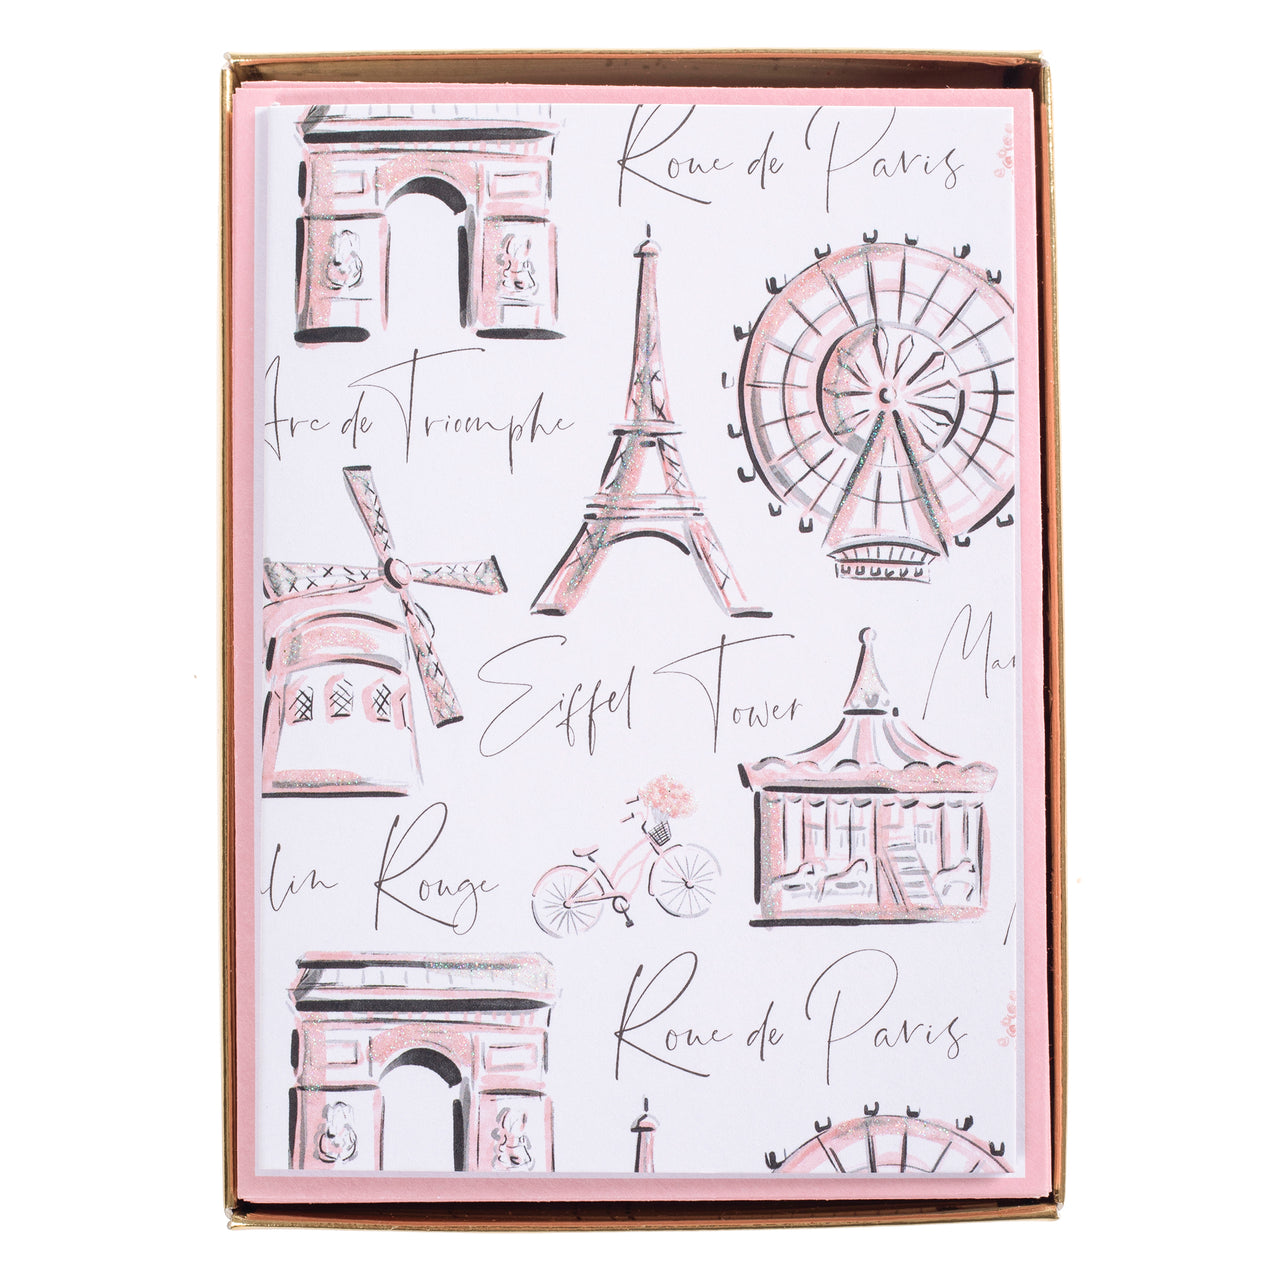 Meet me in Paris Boxed Cards